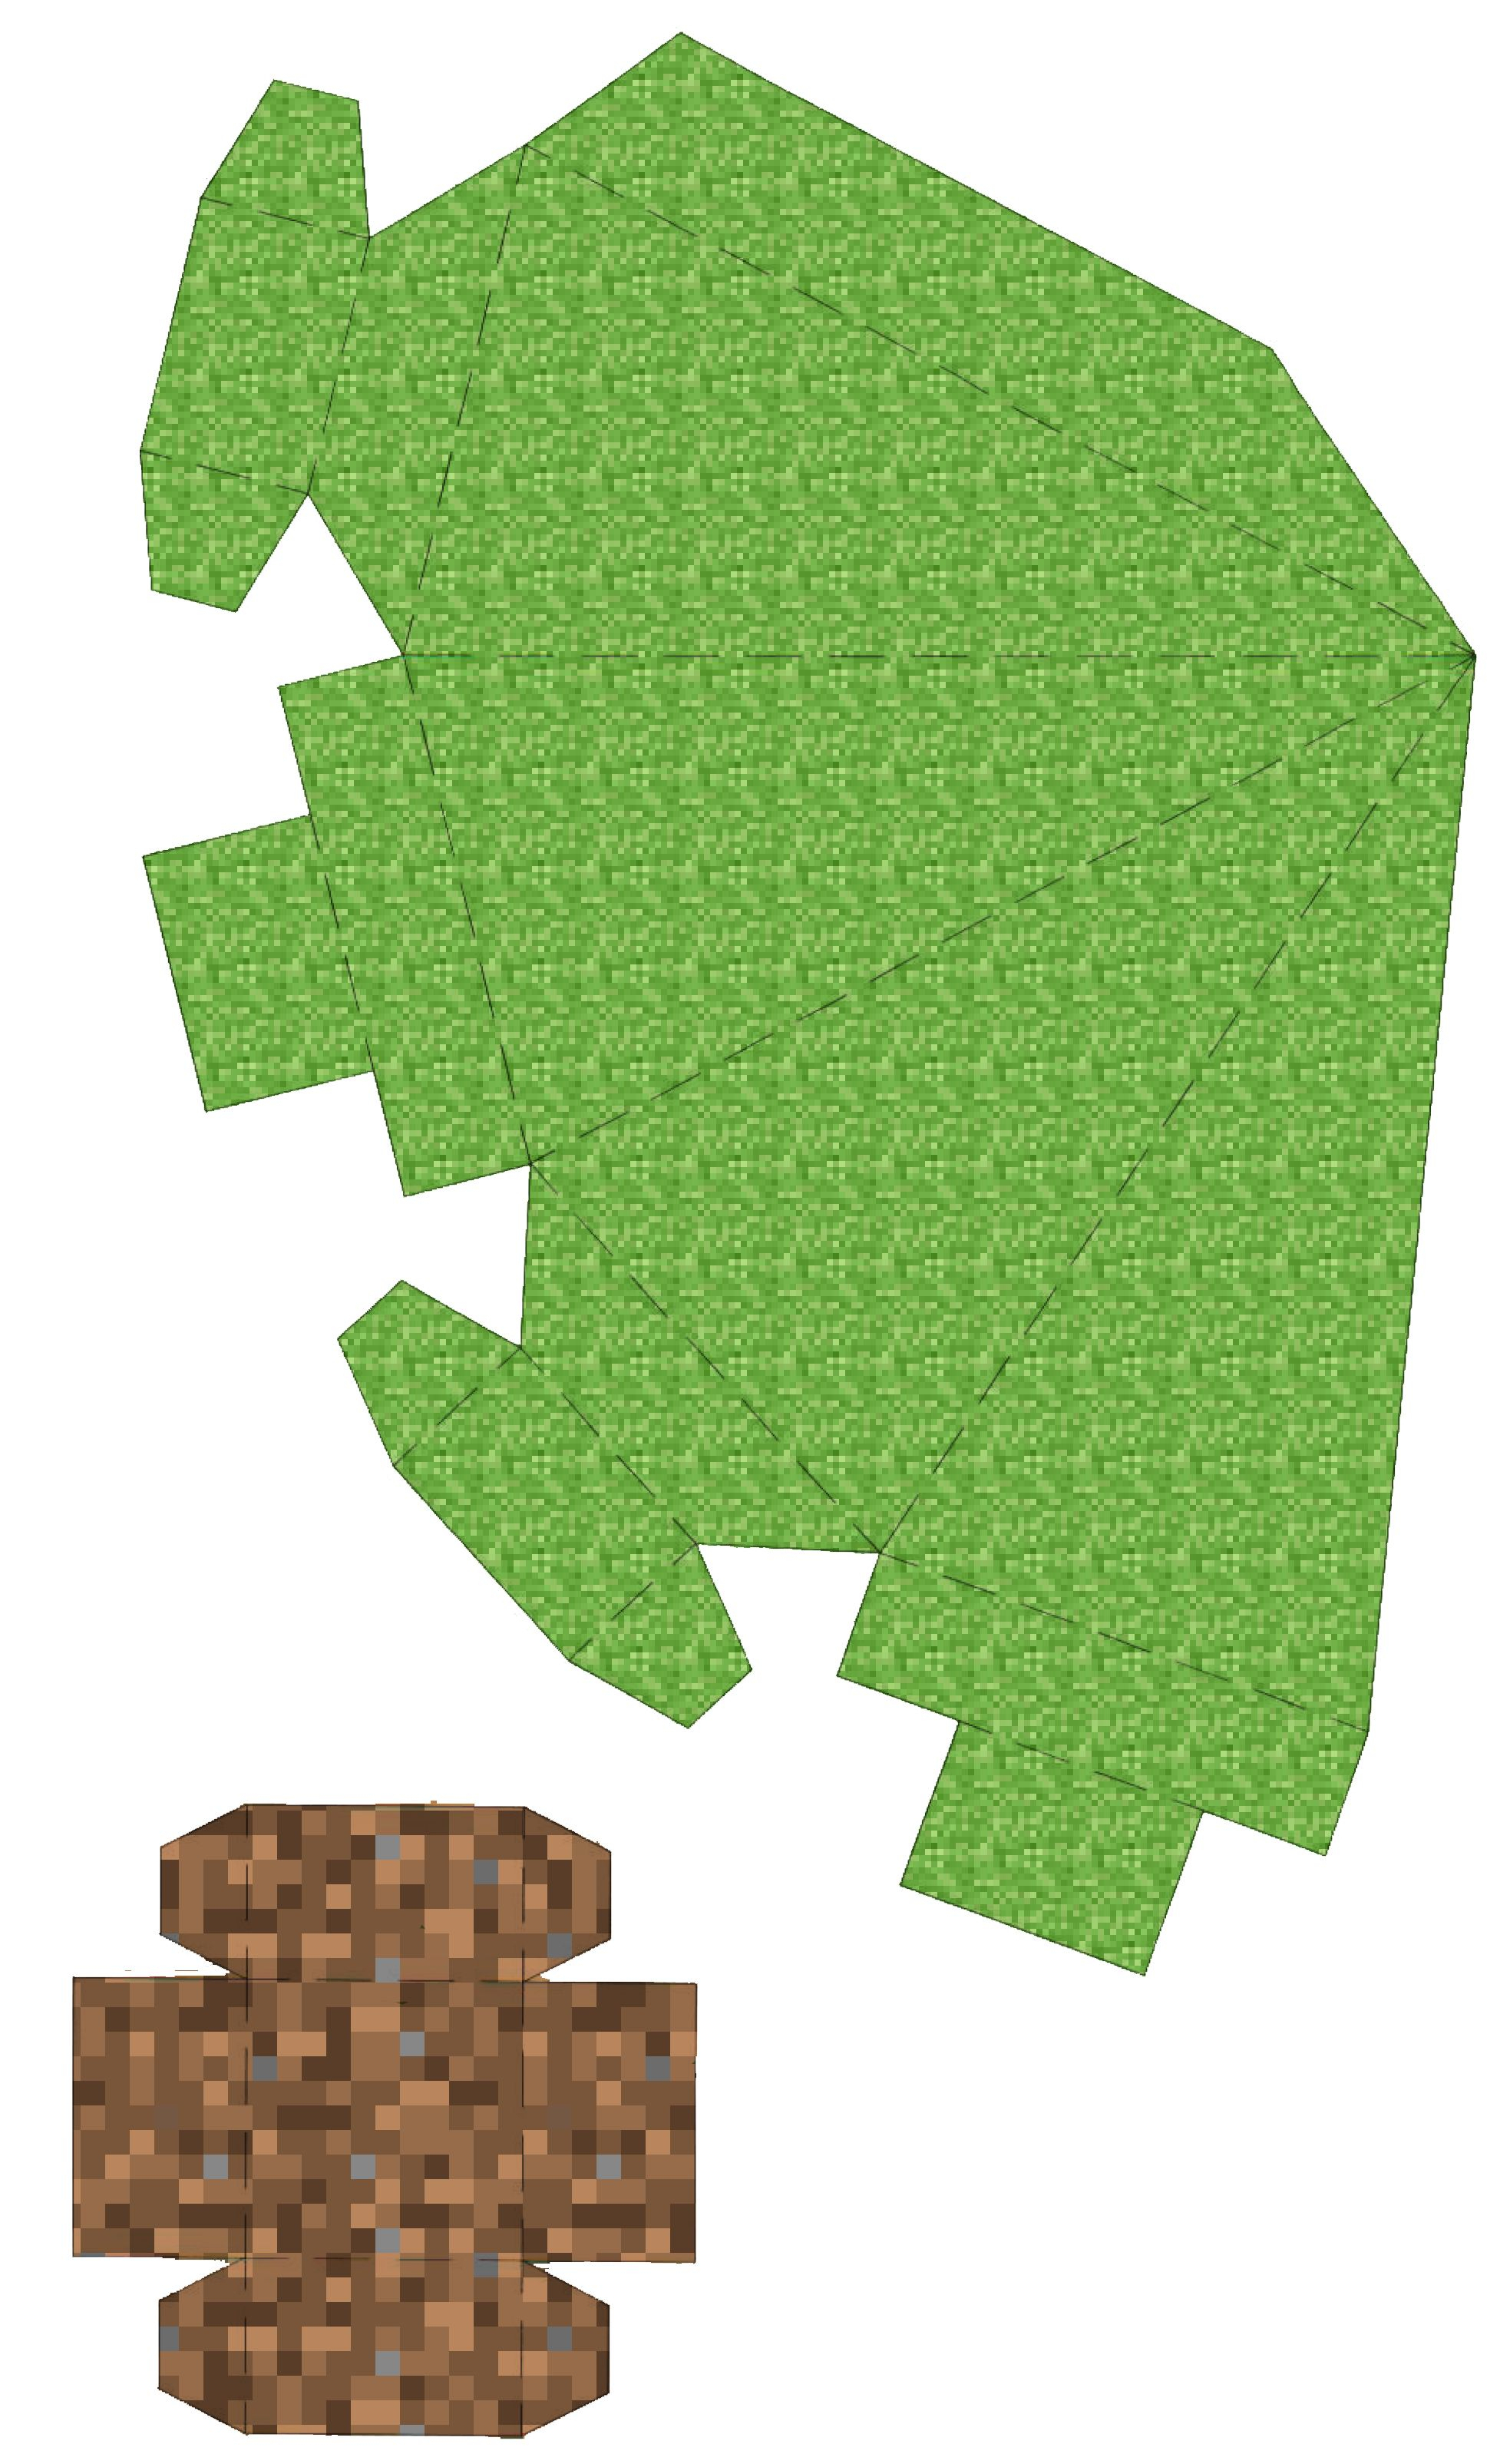 Pincrafty Annabelle On Minecraft Printables | Minecraft intended for Printable Christmas Tree Templates 3D